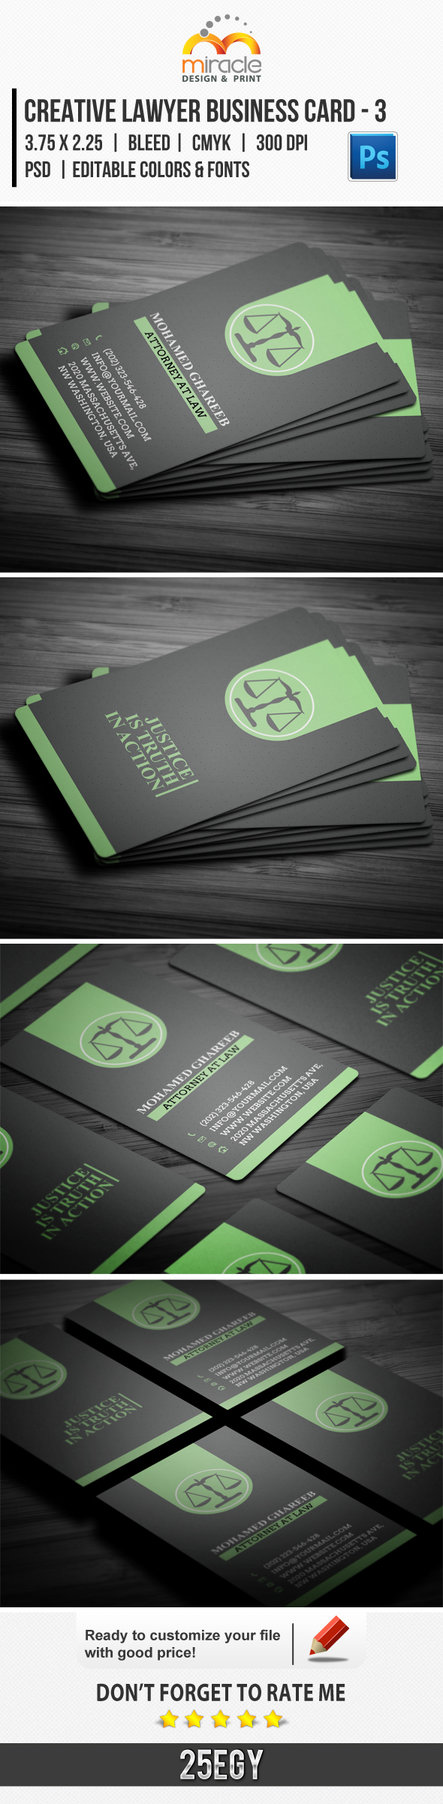 Creative Lawyer Business Card 3 By Egyptos On Deviantart Future